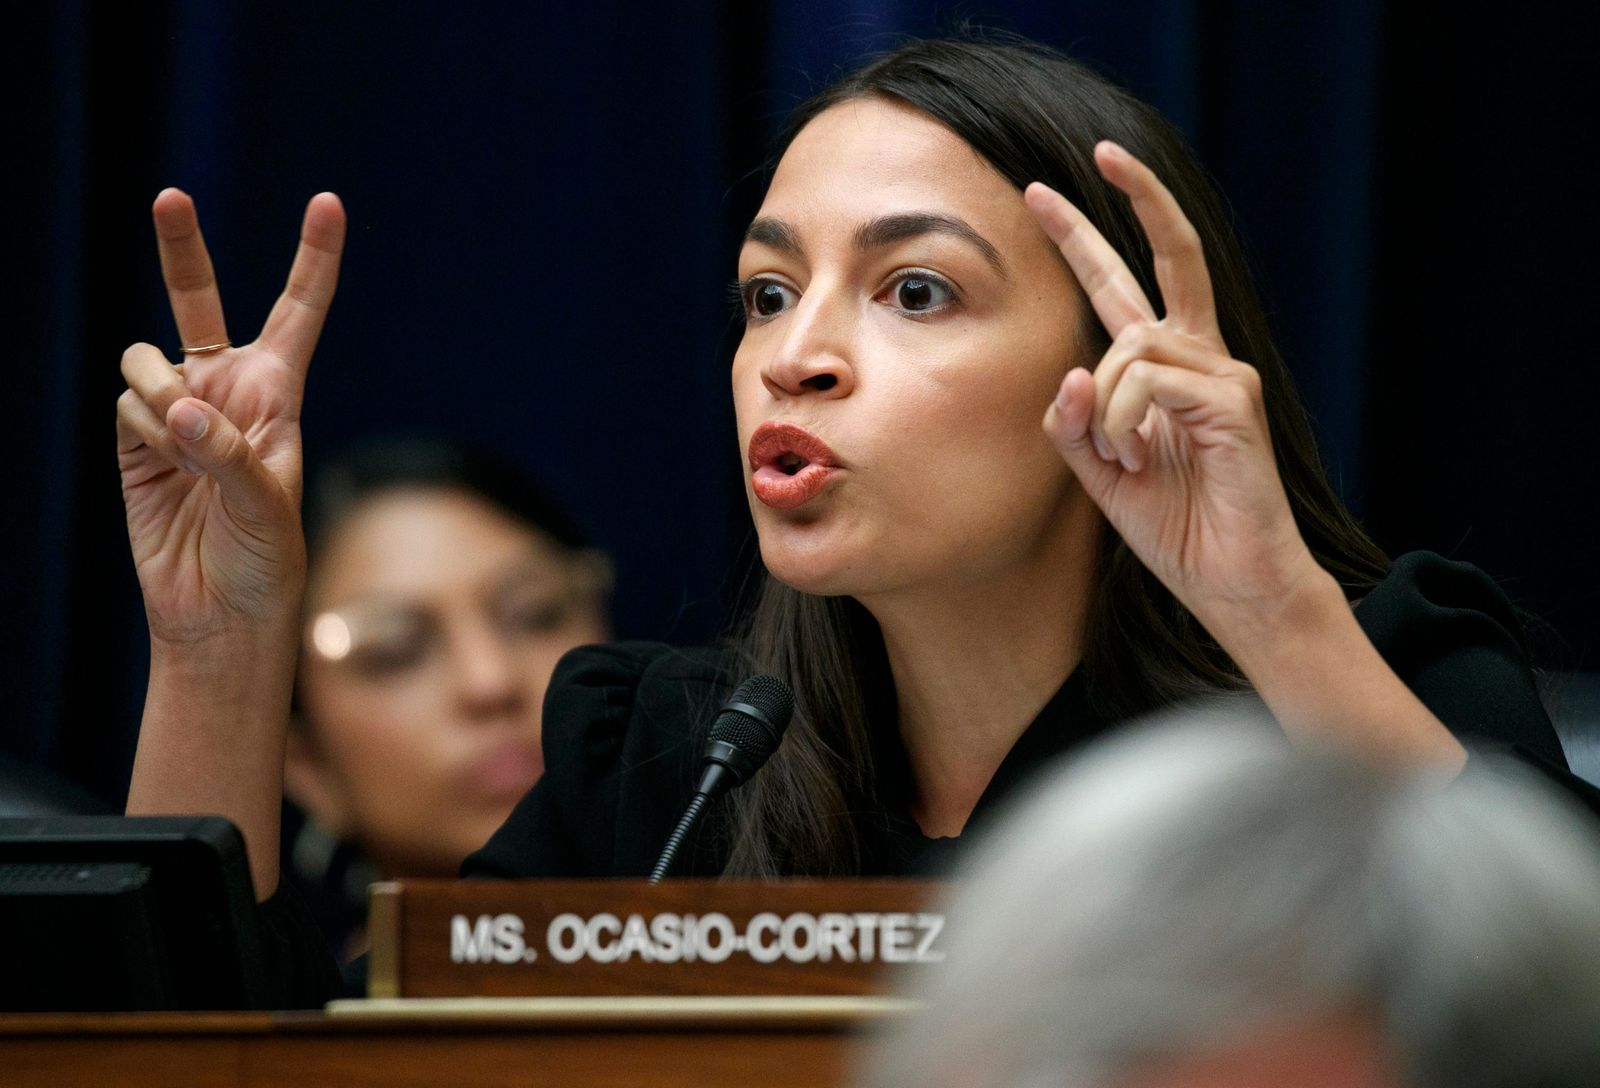 Rep. Alexandria Ocasio-Cortez, D-N.Y., asks a question during a House Oversight subcommittee hearing into the Trump administration's decision to stop considering requests from immigrants seeking to remain in the country for medical treatment and other hardships, Wednesday, Sept. 11, 2019, in Washington. (AP Photo/Jacquelyn Martin)